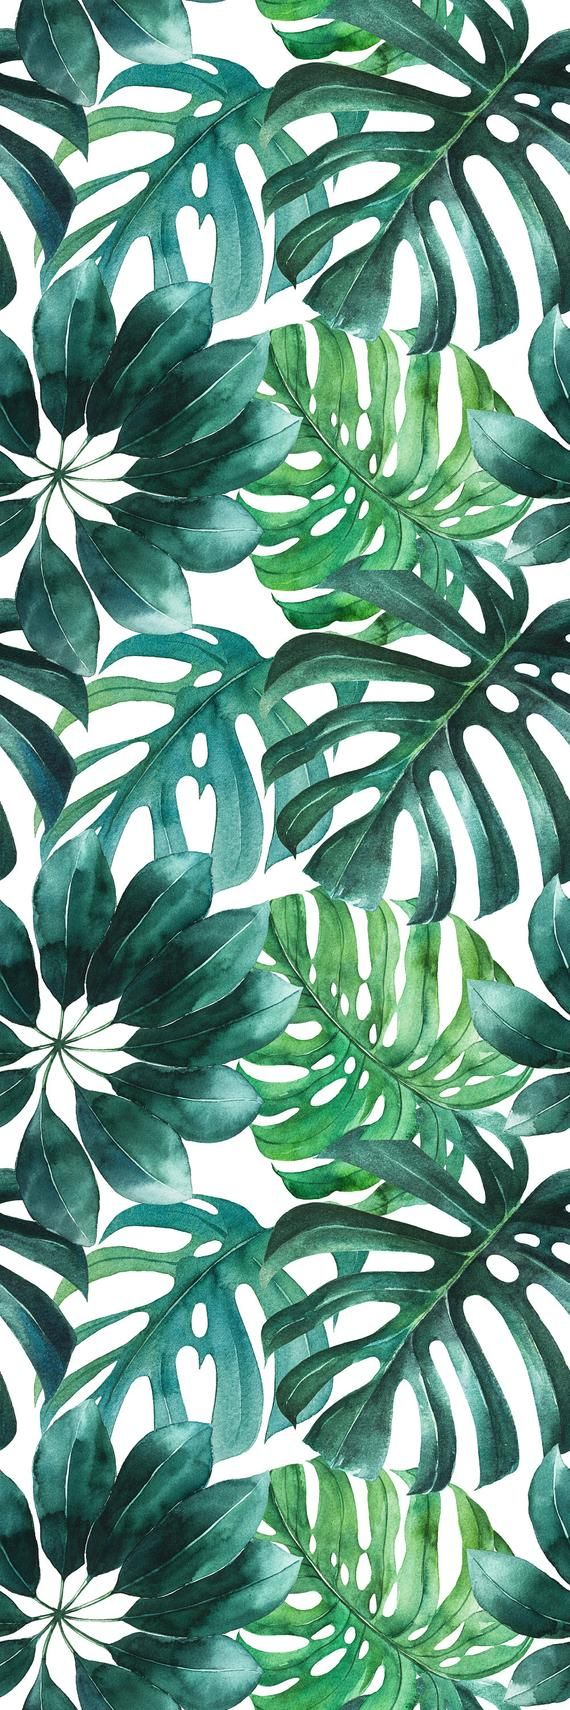 Removable Wallpaper Self Adhesive Wallpaper Green Watercolor Etsy Backgrounds Phone Wallpapers Iphone Background Wallpaper Green Wallpaper